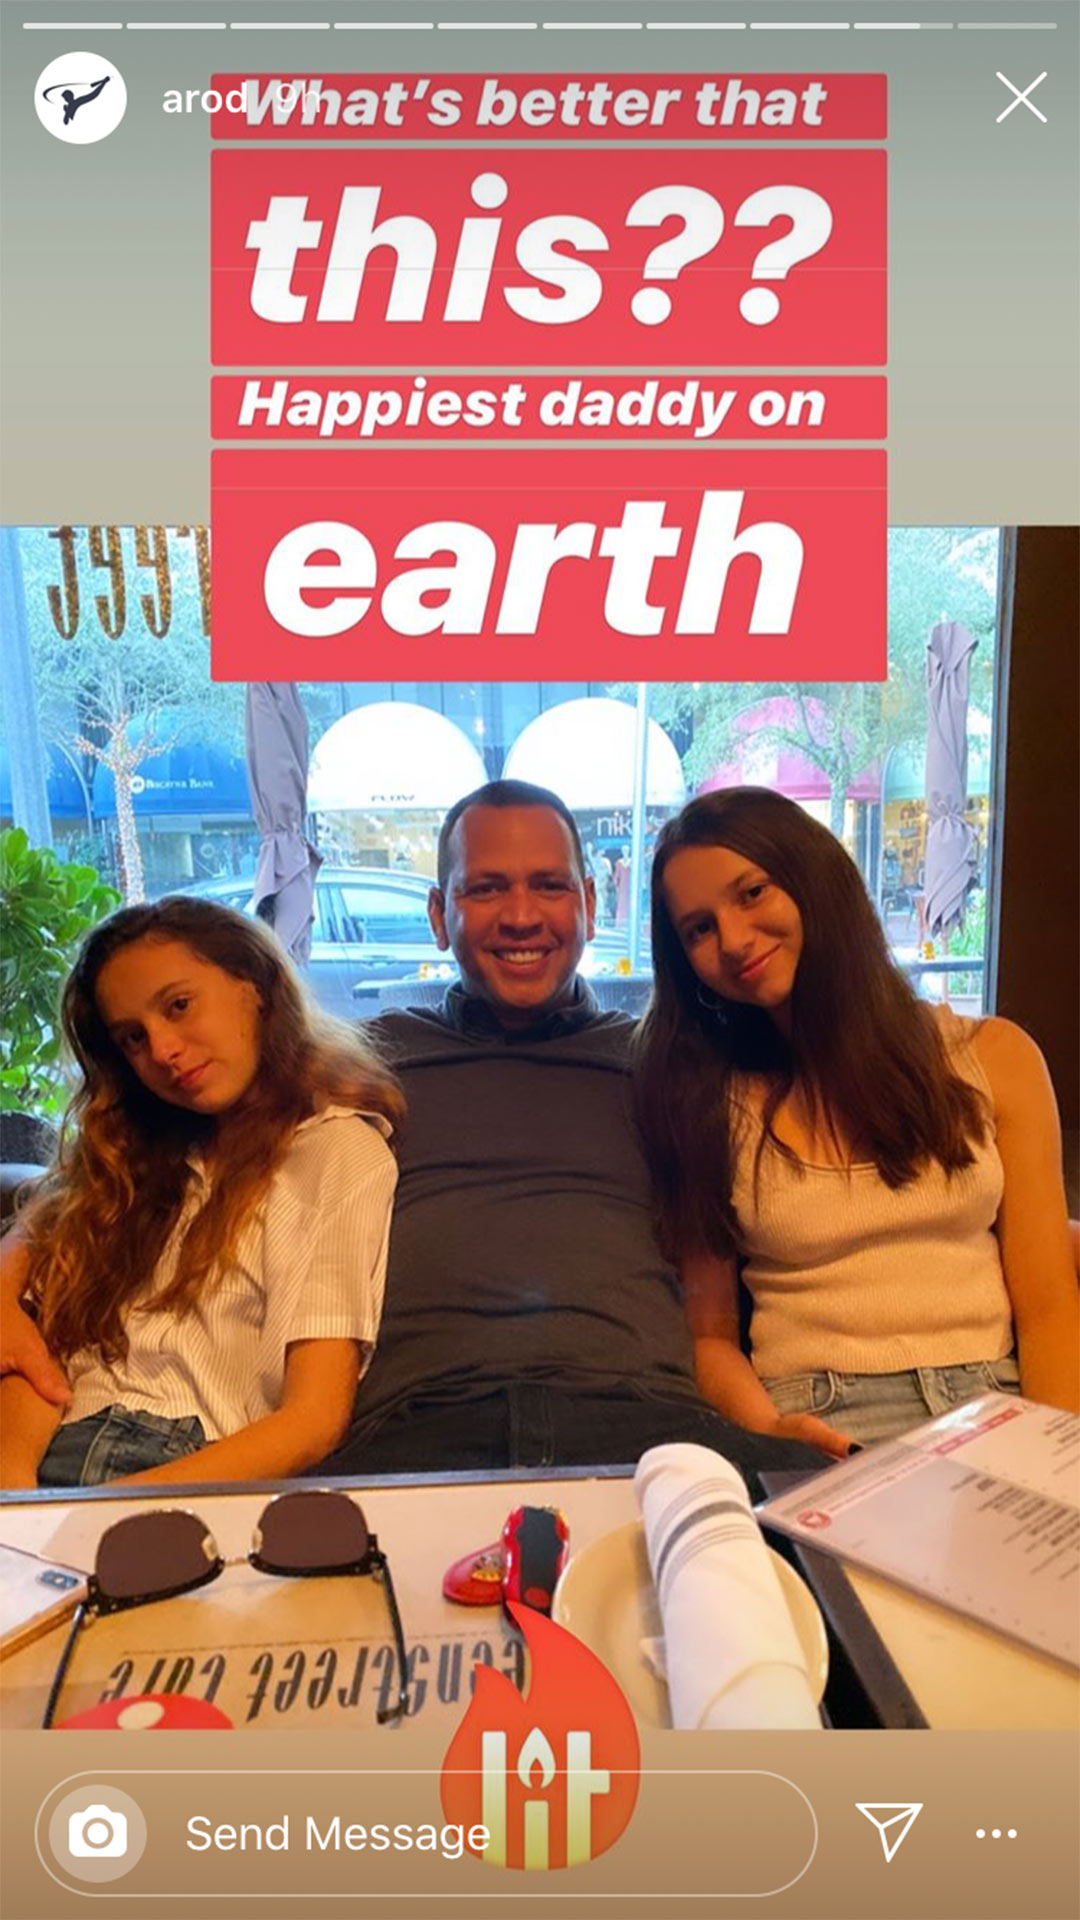 Arod and daughters